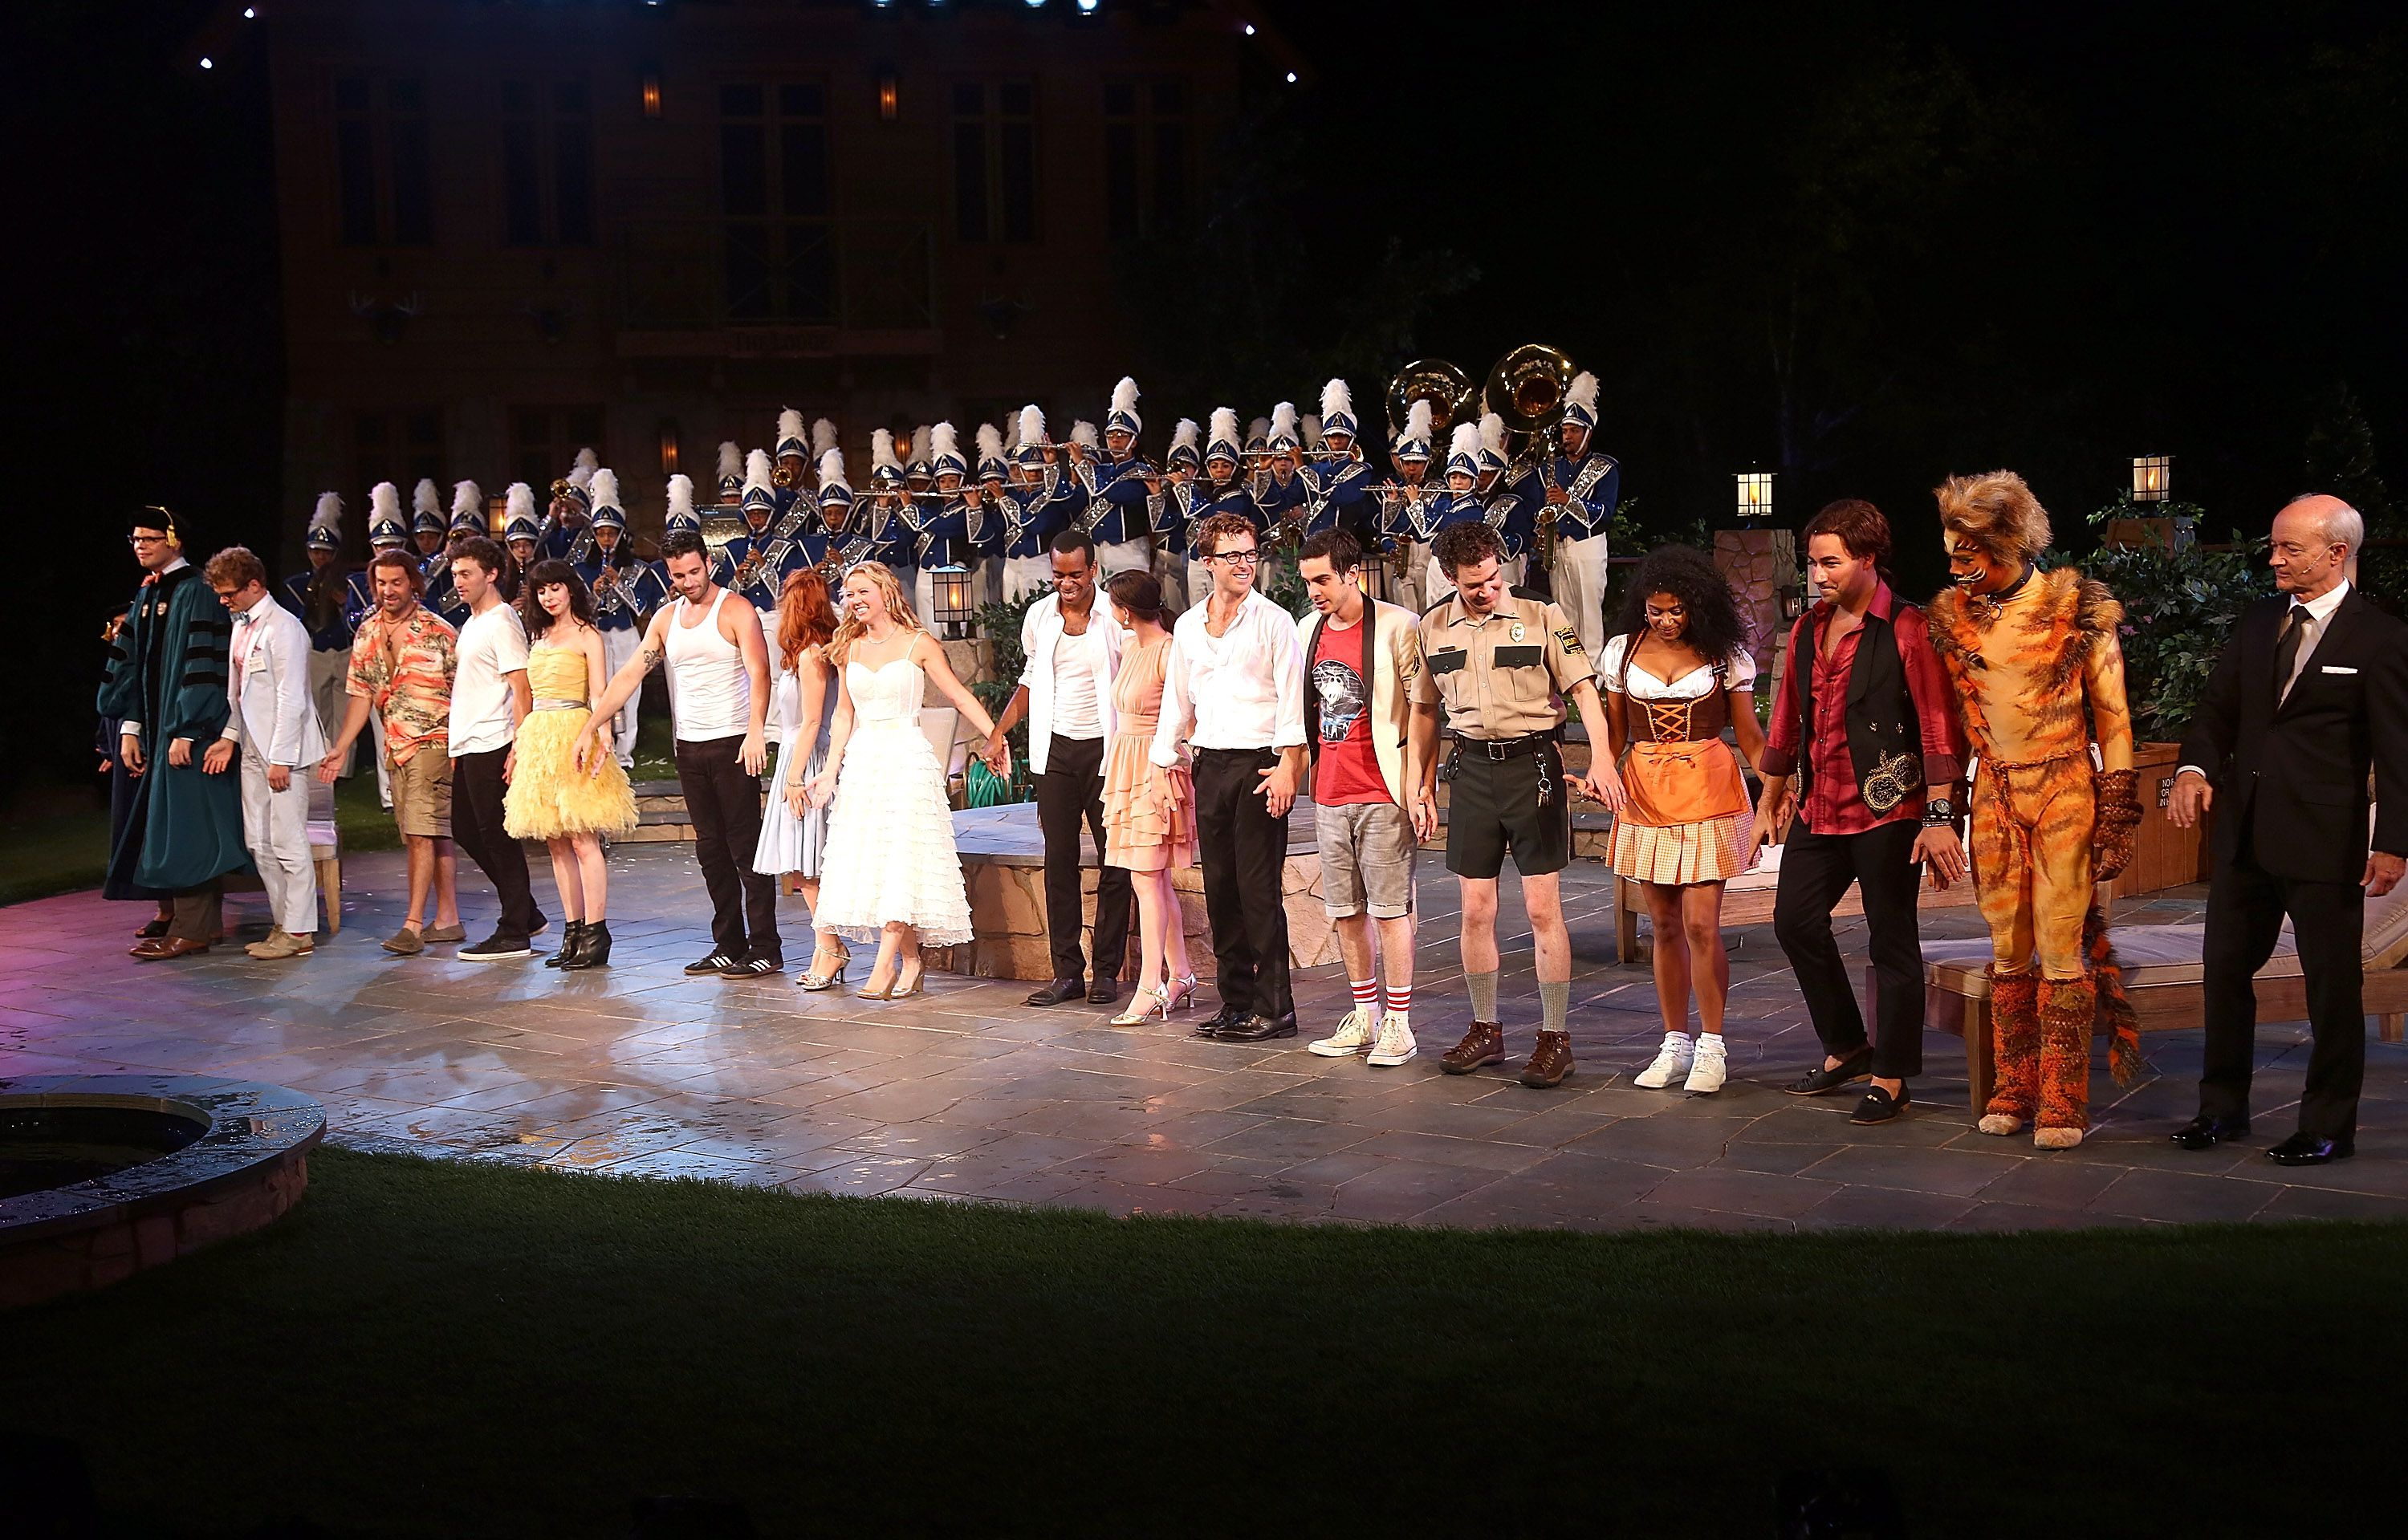 The curtain call for Love's Labour's Lost at Shakespeare in the Park, 2013